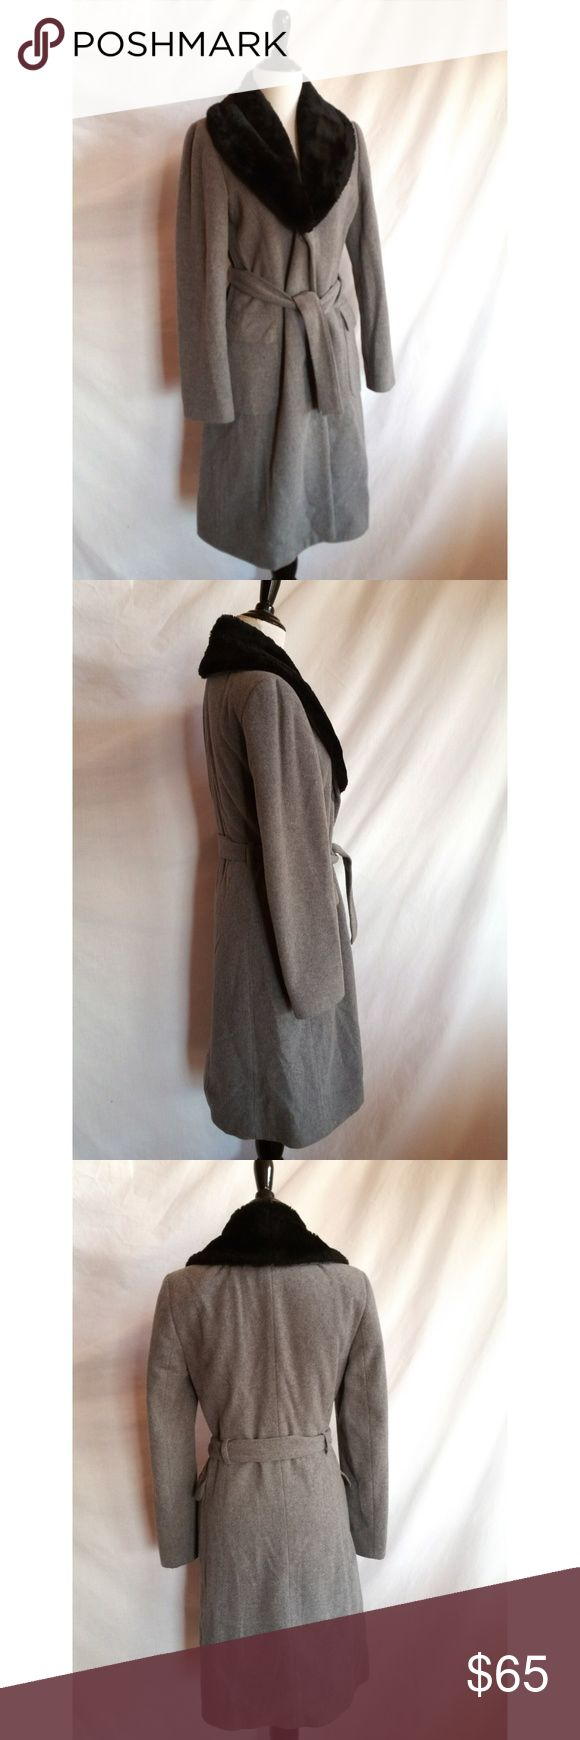 """United Colors of Benetton Size S Belted Coat Gray Size 40, which is like a 4 or a small Made in Italy 80% wool, 20% nylon Dry clean Faux fur color Front pockets  Measurements laying flat:  Armpit to armpit:  18.25"""" Length:  38.25"""" Sleeves: 24"""" United Colors Of Benetton Jackets & Coats"""